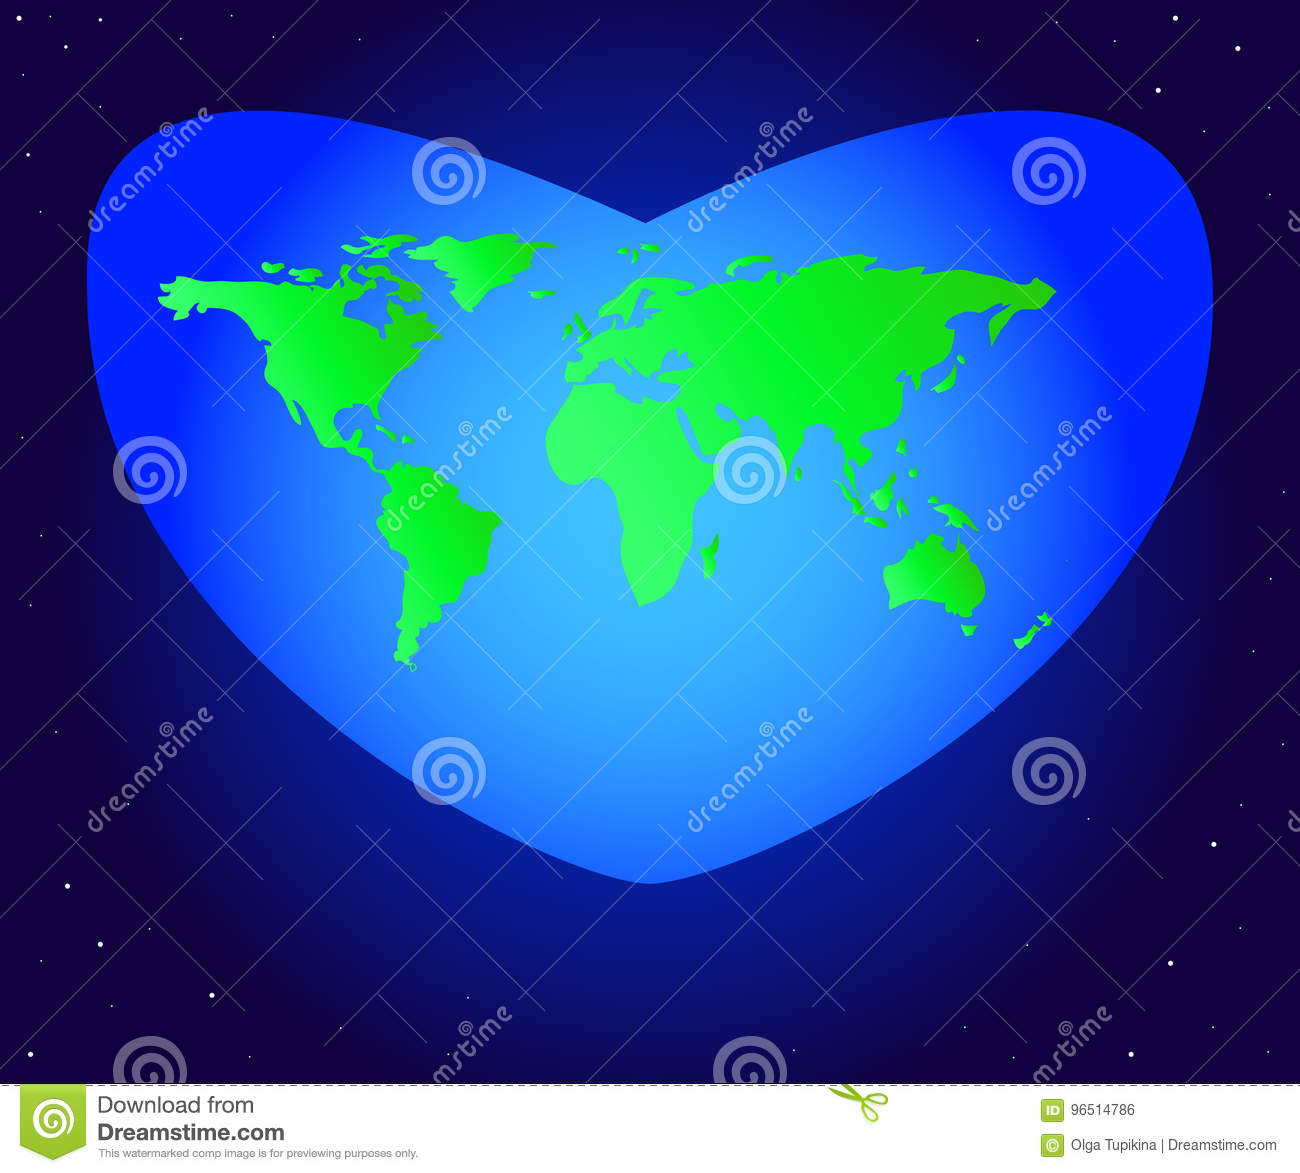 World Environment Day. Vector illustration of the mainland planet Earth green in a beautiful blue heart.